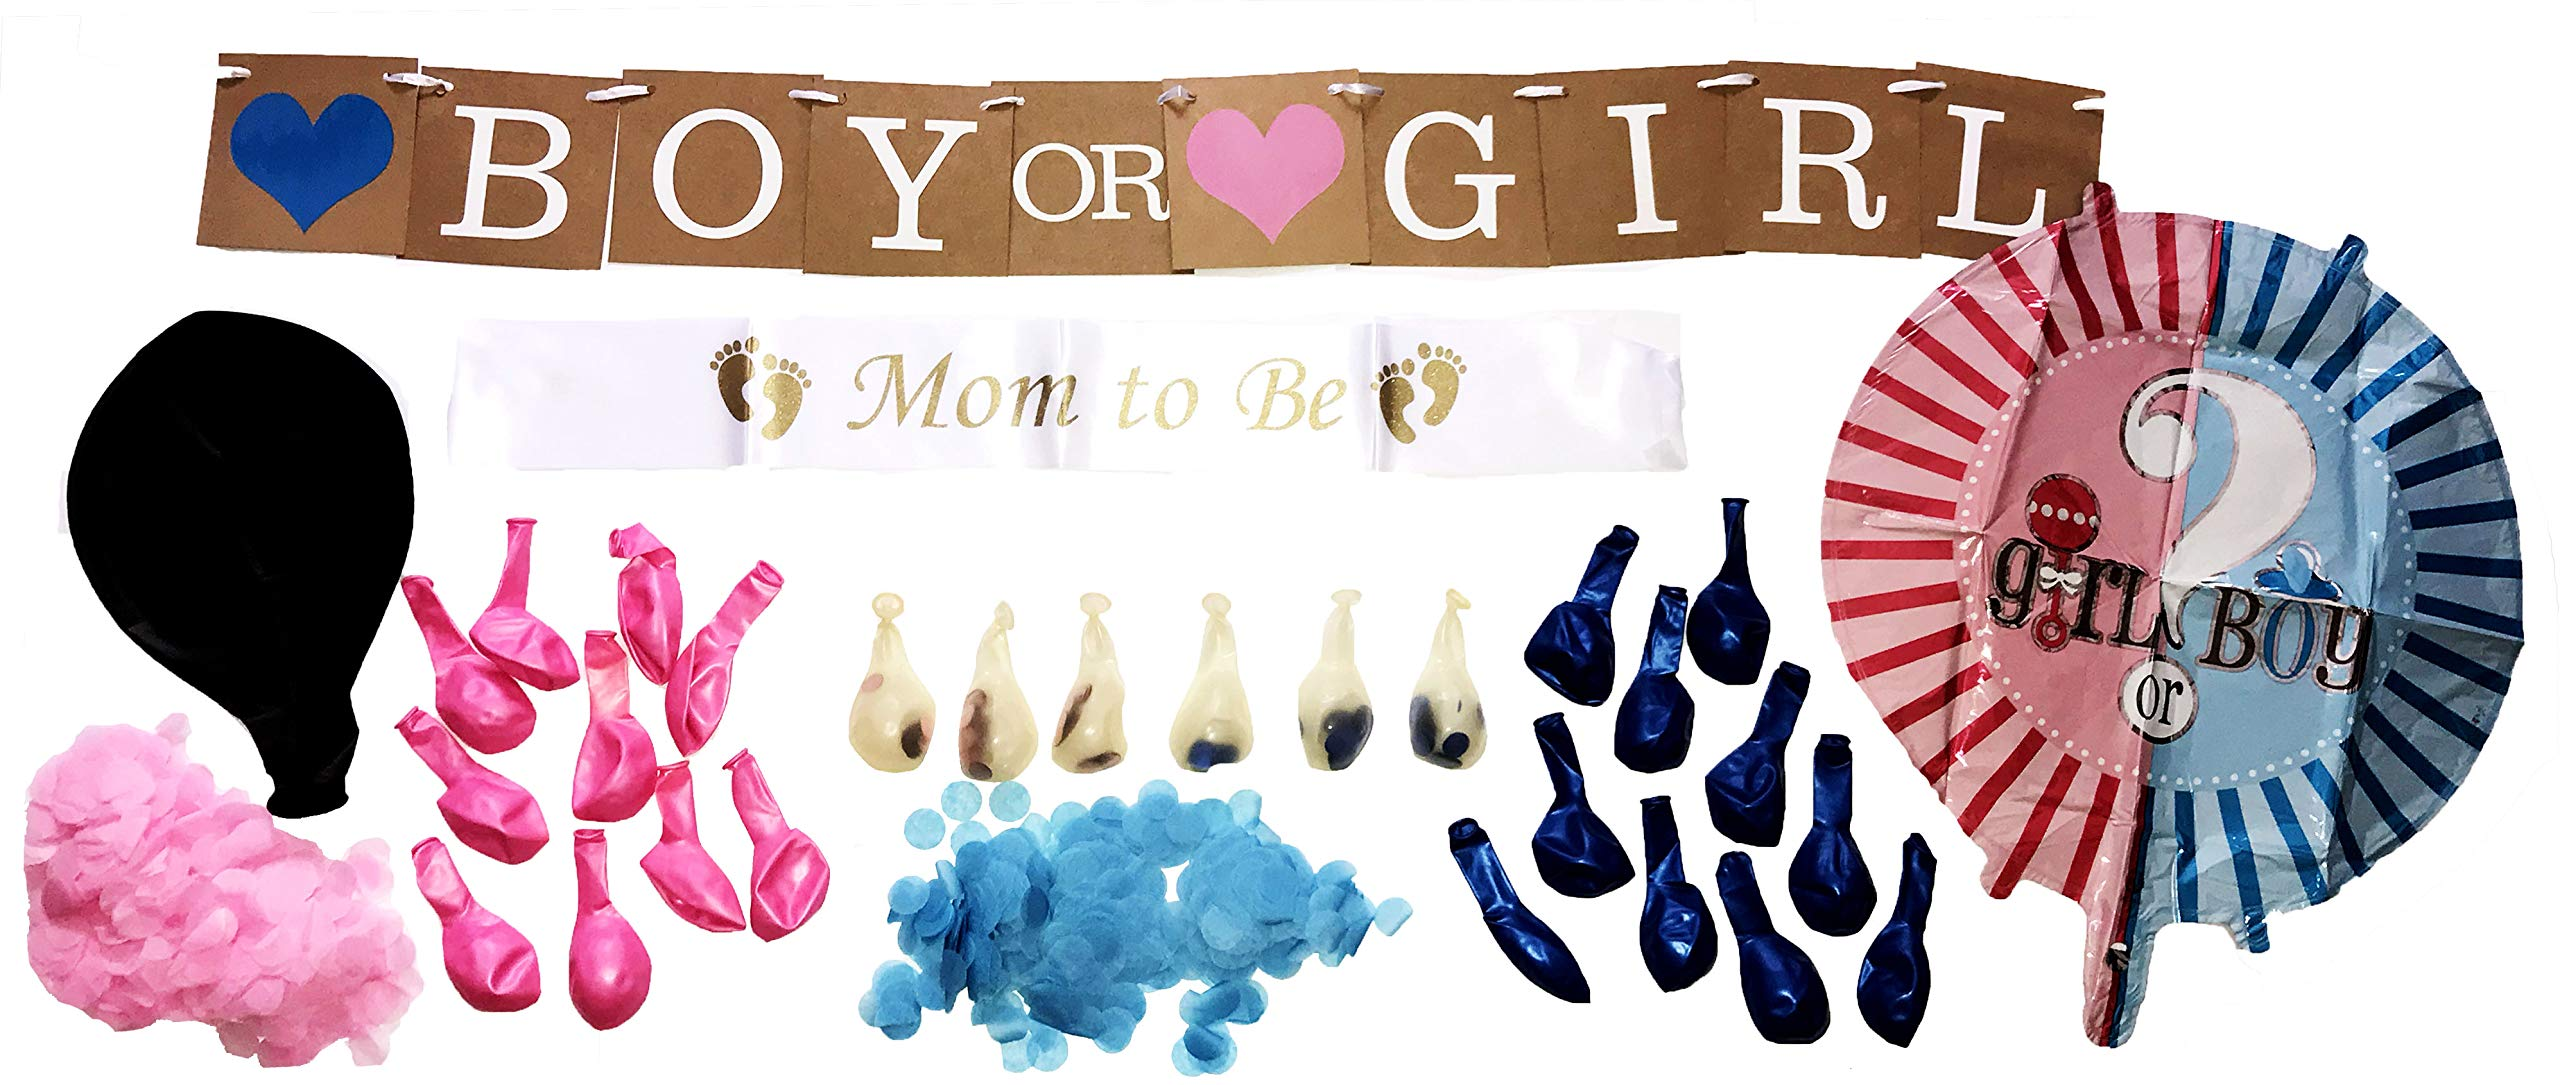 Texas Baby Products - Gender Reveal Party Supplies Set for Girls & Boys | Includes Mom to Be Sash & Jumbo Black Gender Reveal Balloon, Banner Decorations & More | Complete Kit for Your Shower